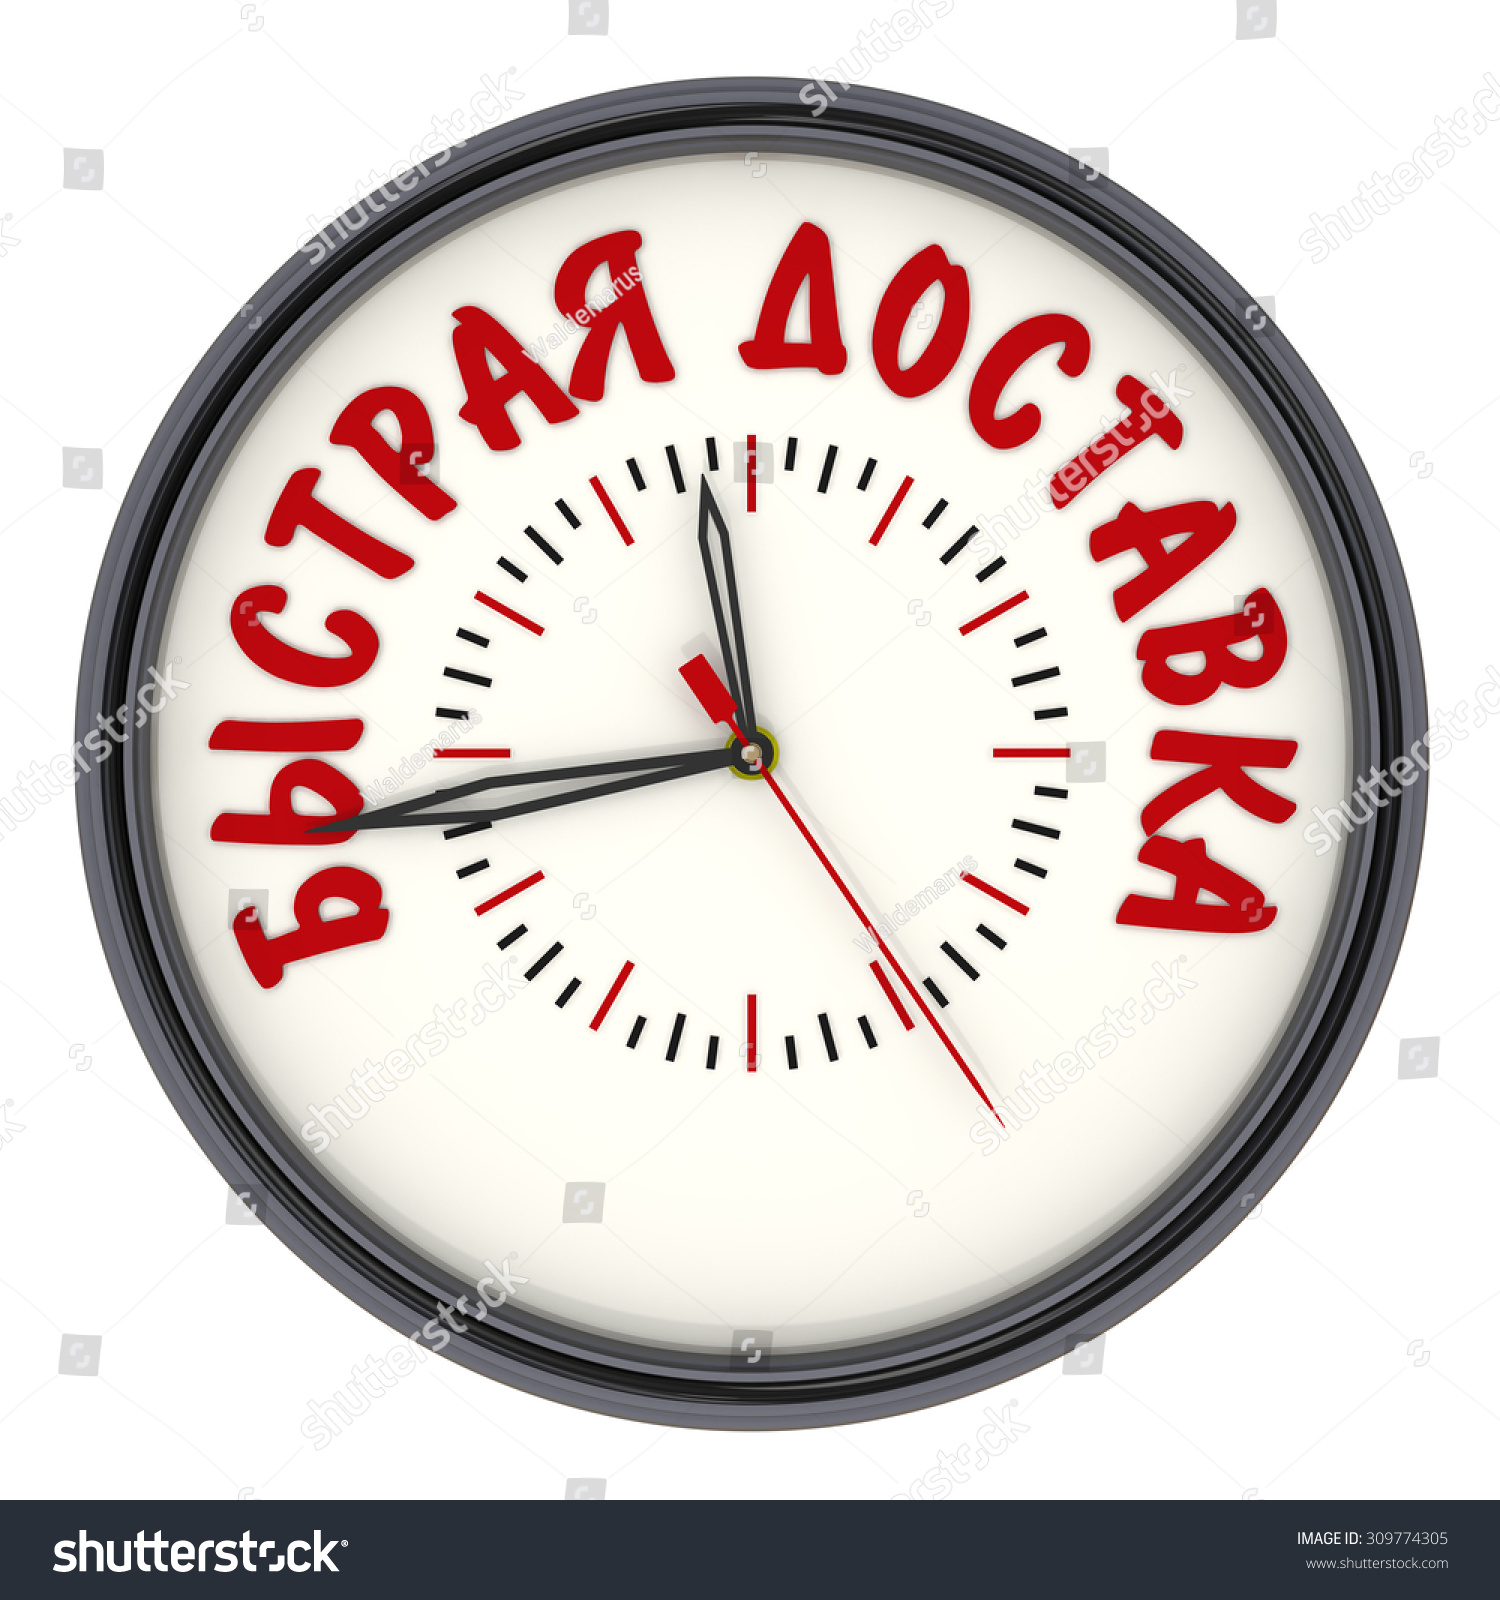 Analog clock words fast shipping russian stock illustration analog clock with the words fast shipping russian language amipublicfo Images